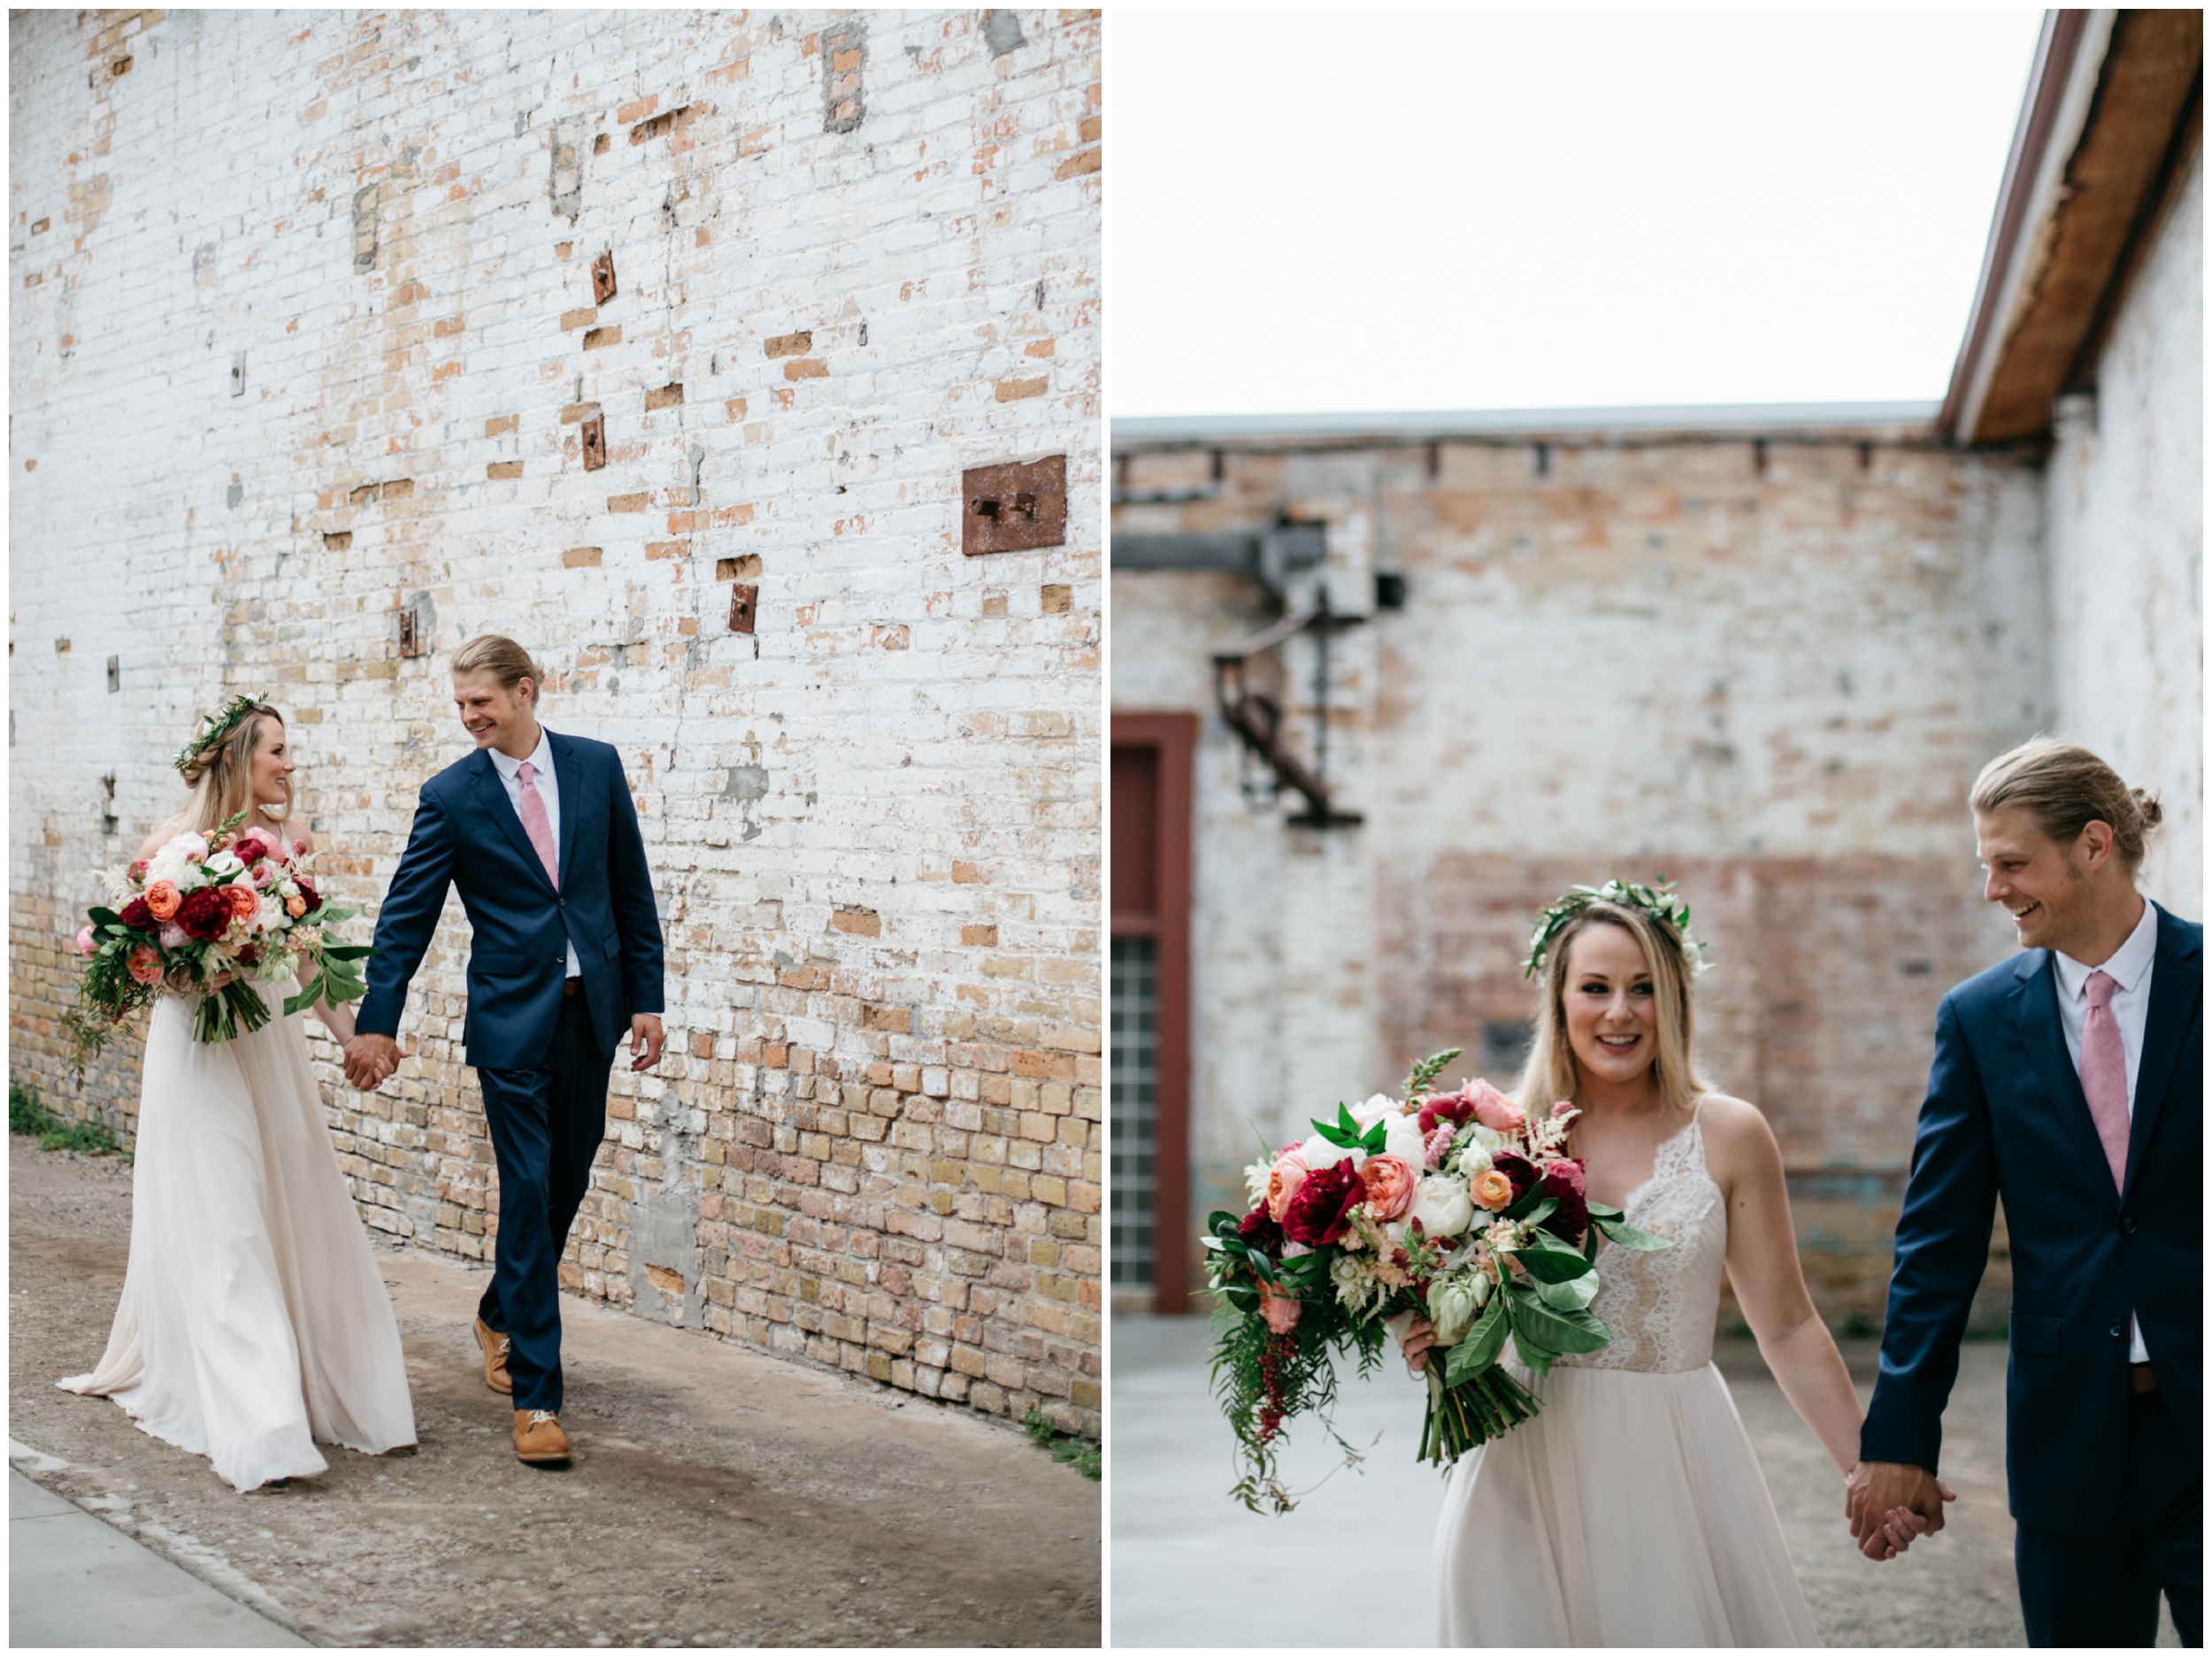 Romantic industrial wedding at the NP Event Space